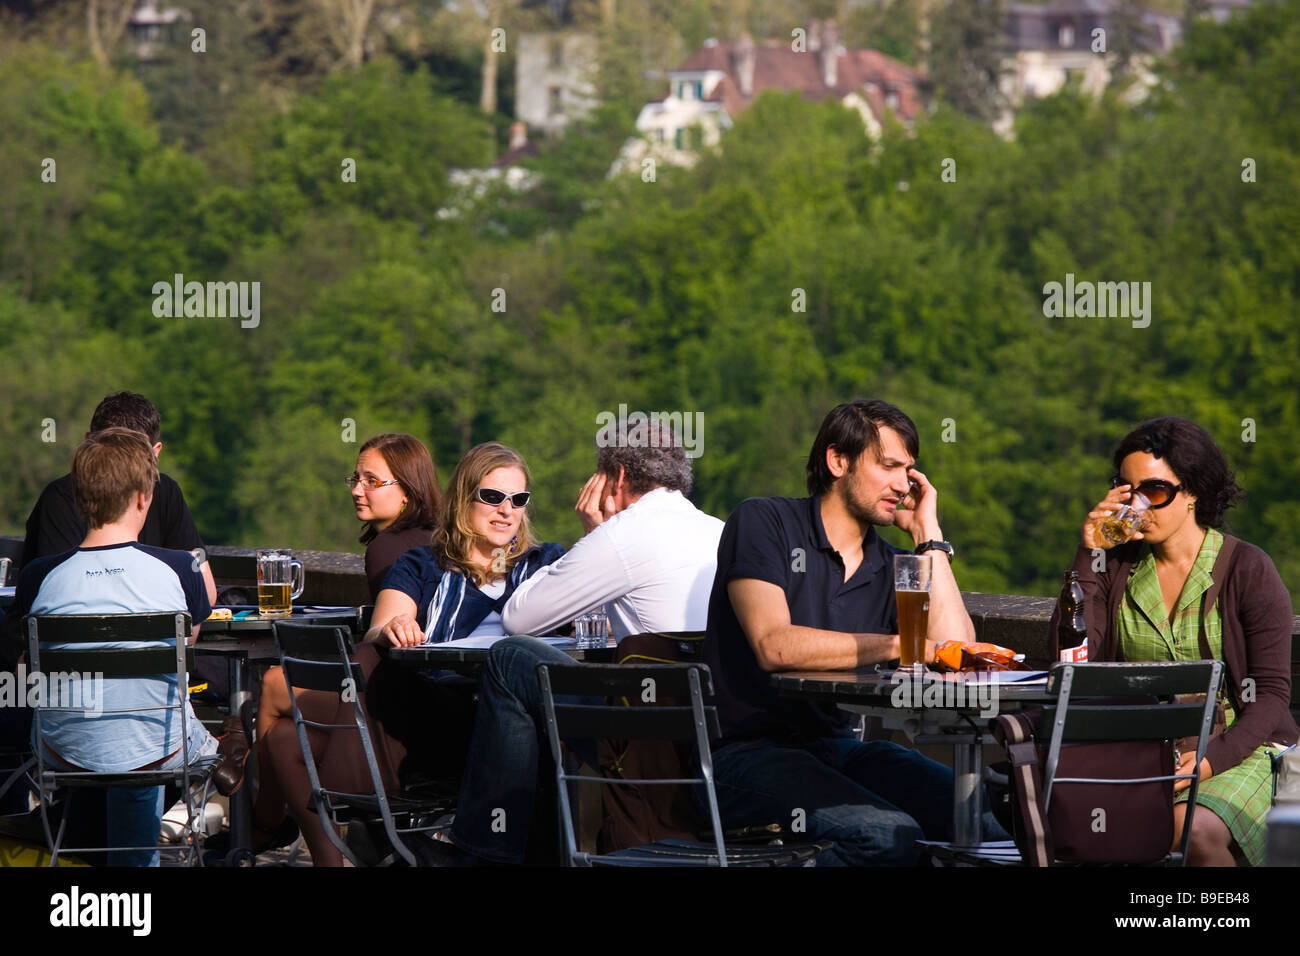 Guests sitting in a the restaurant at Münsterplattform terrace near Münster of Berne Old Town Berne - Stock Image